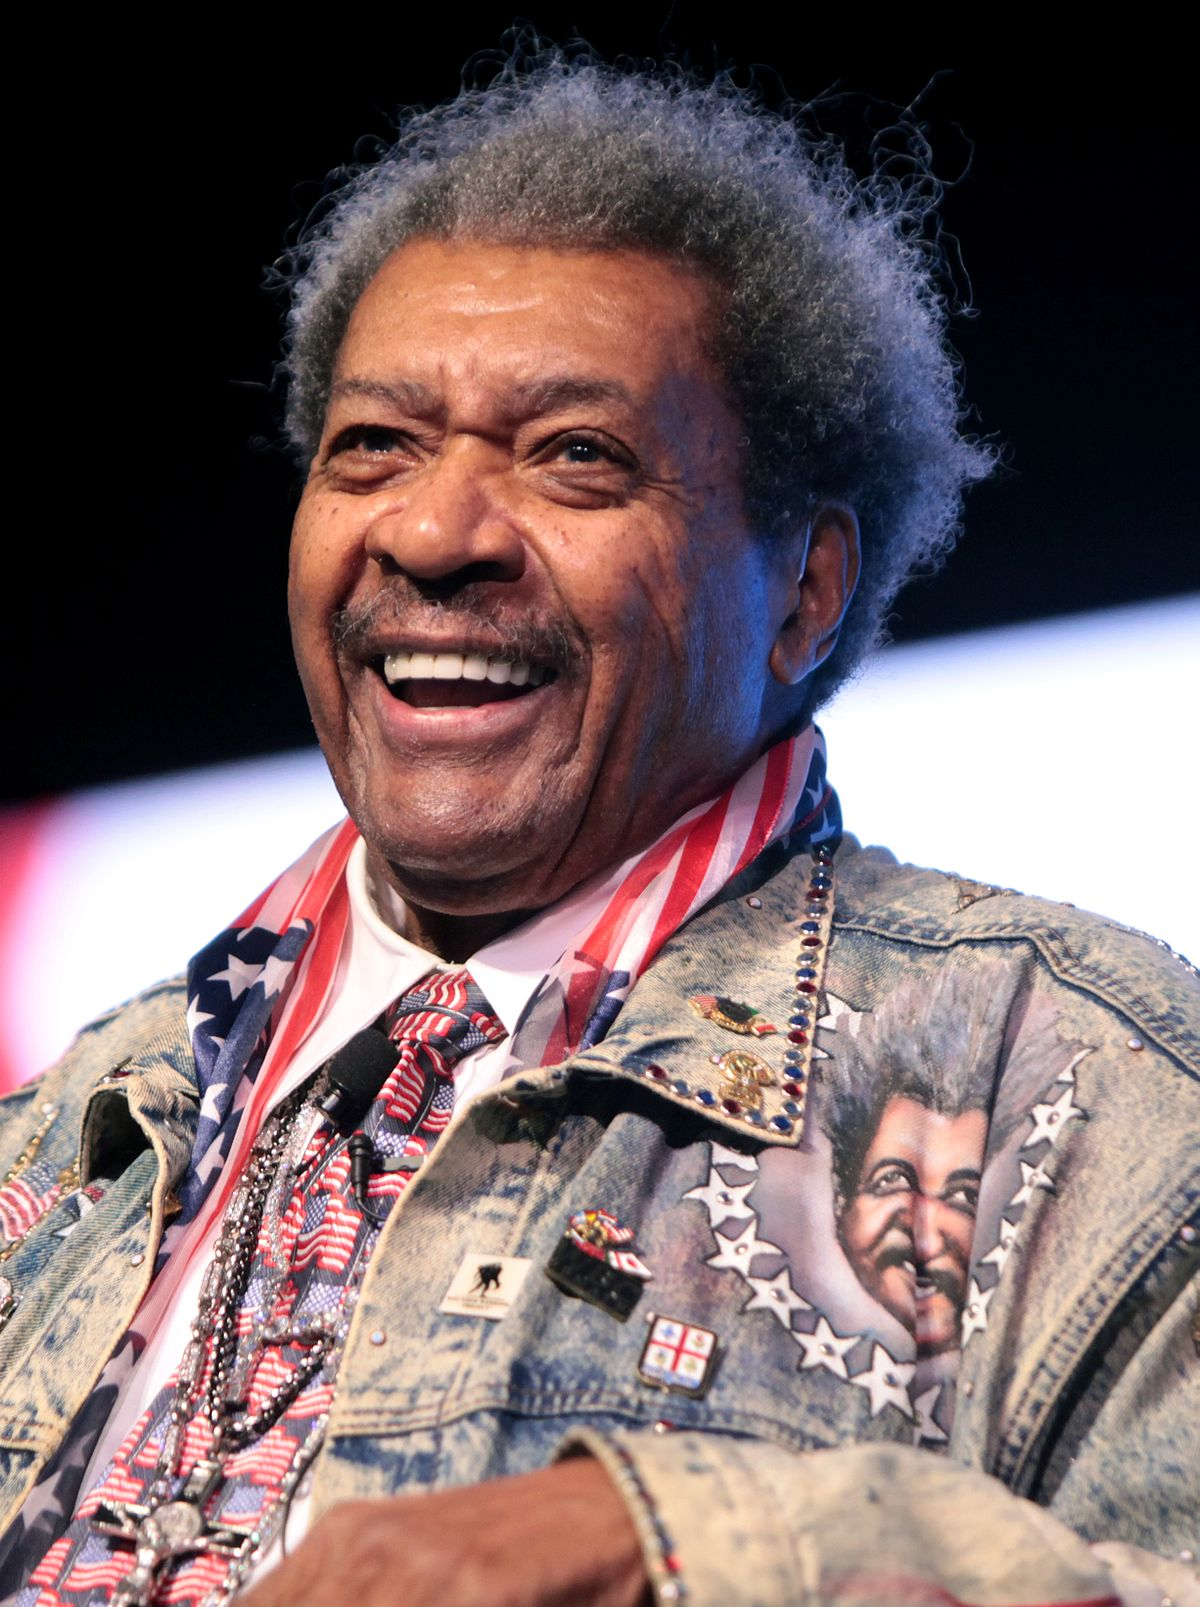 Don King Boxing Promoter